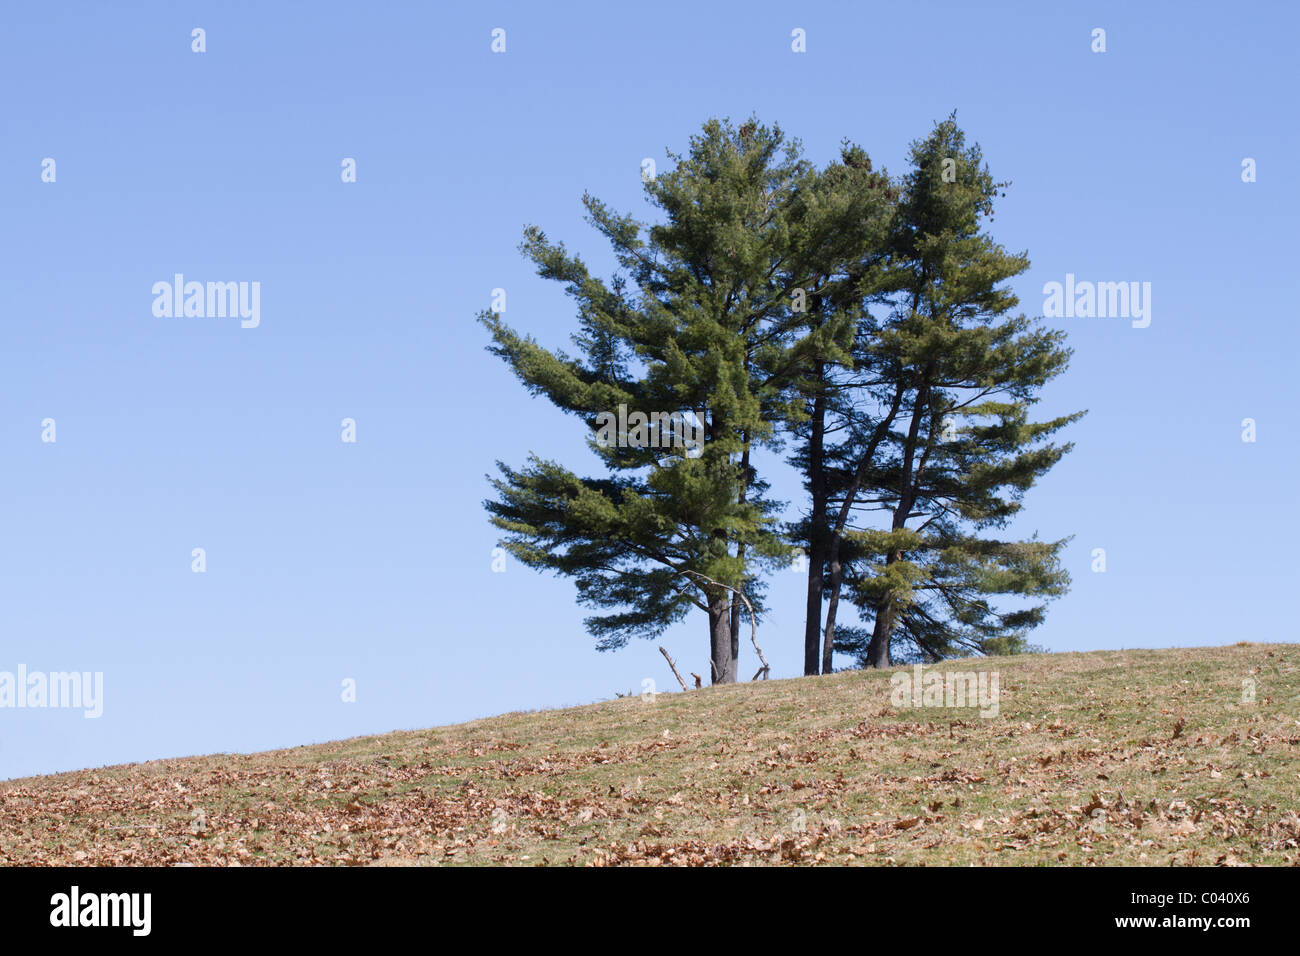 A small stand of eastern white pines (Pinus strobus) on a hillside under a blue sky. - Stock Image